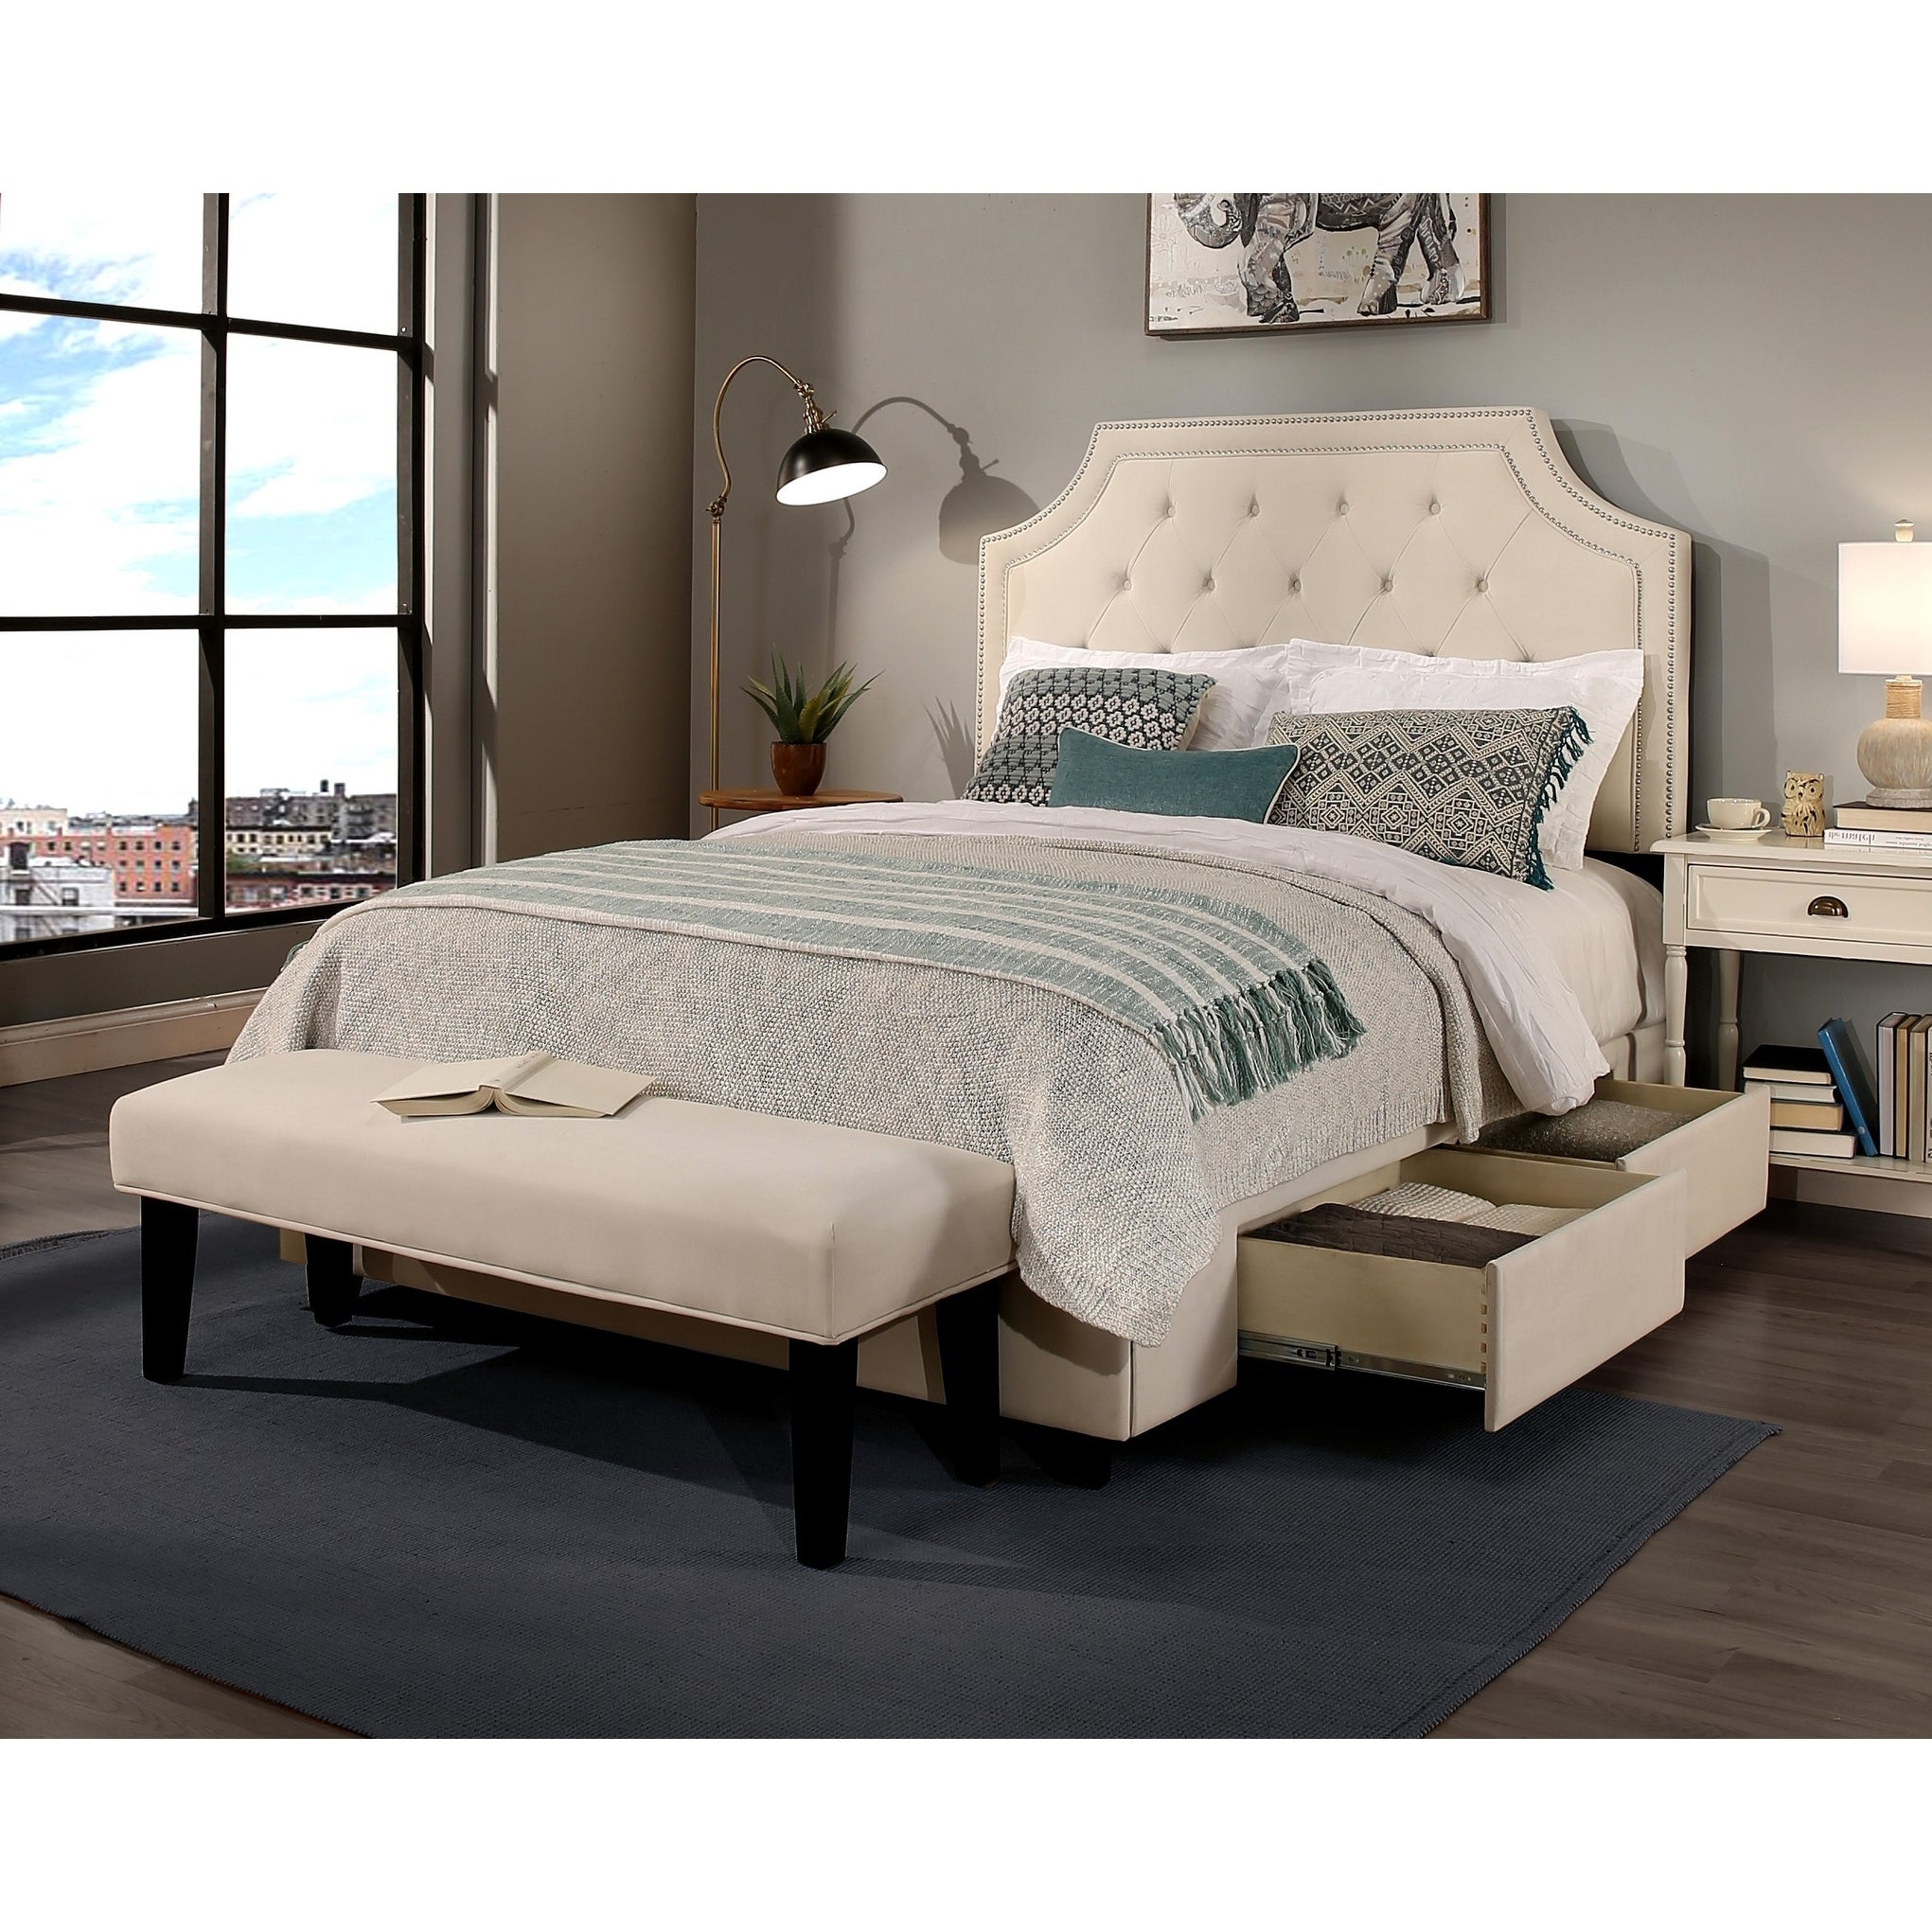 Republic Design House Steel Core Audrey Storage Bed With Bench Size California King Overstock 22210432